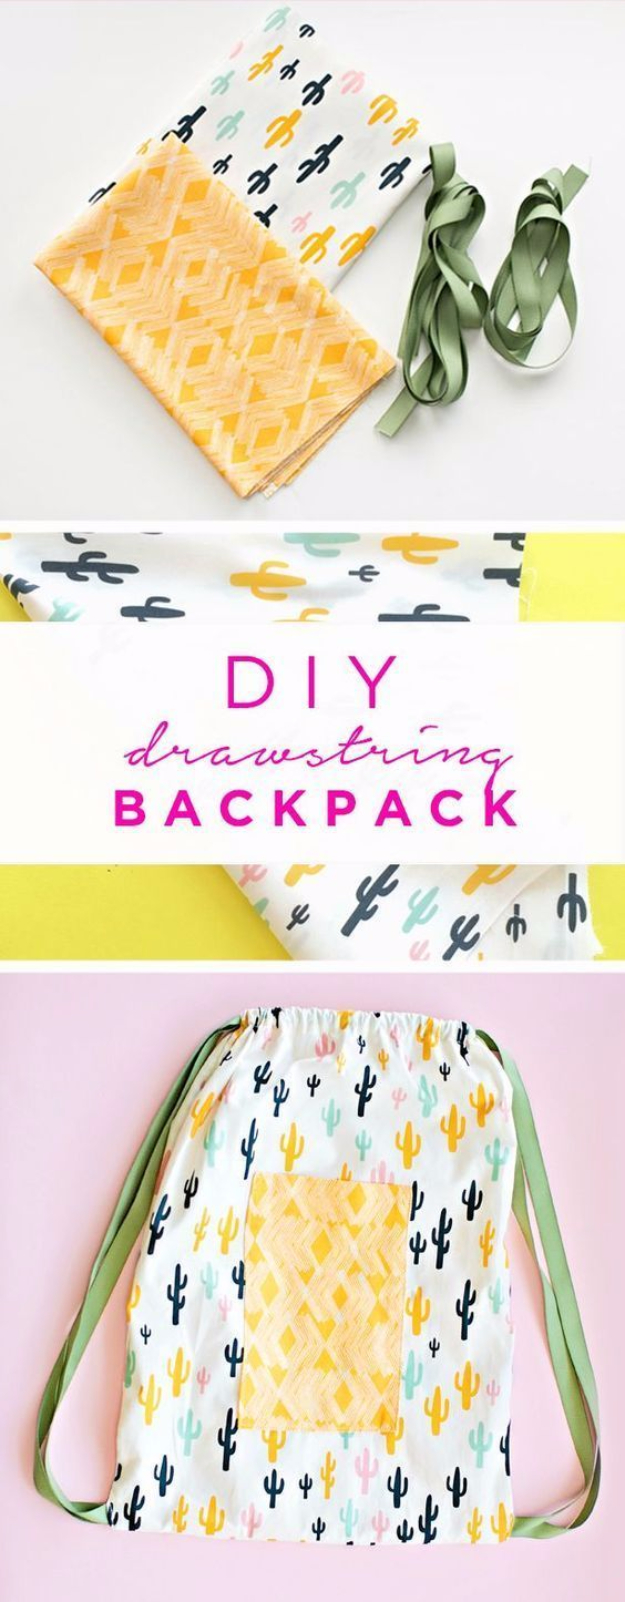 Best Sewing Projects to Make For Boys - DIY Drawstring Backpack - Creative Sewing Tutorials for Baby Kids and Teens - Free Patterns and Step by Step Tutorials for Jackets, Jeans, Shirts, Pants, Hats, Backpacks and Bags - Easy DIY Projects and Quick Crafts Ideas #sewing #kids #boys #sewingprojects